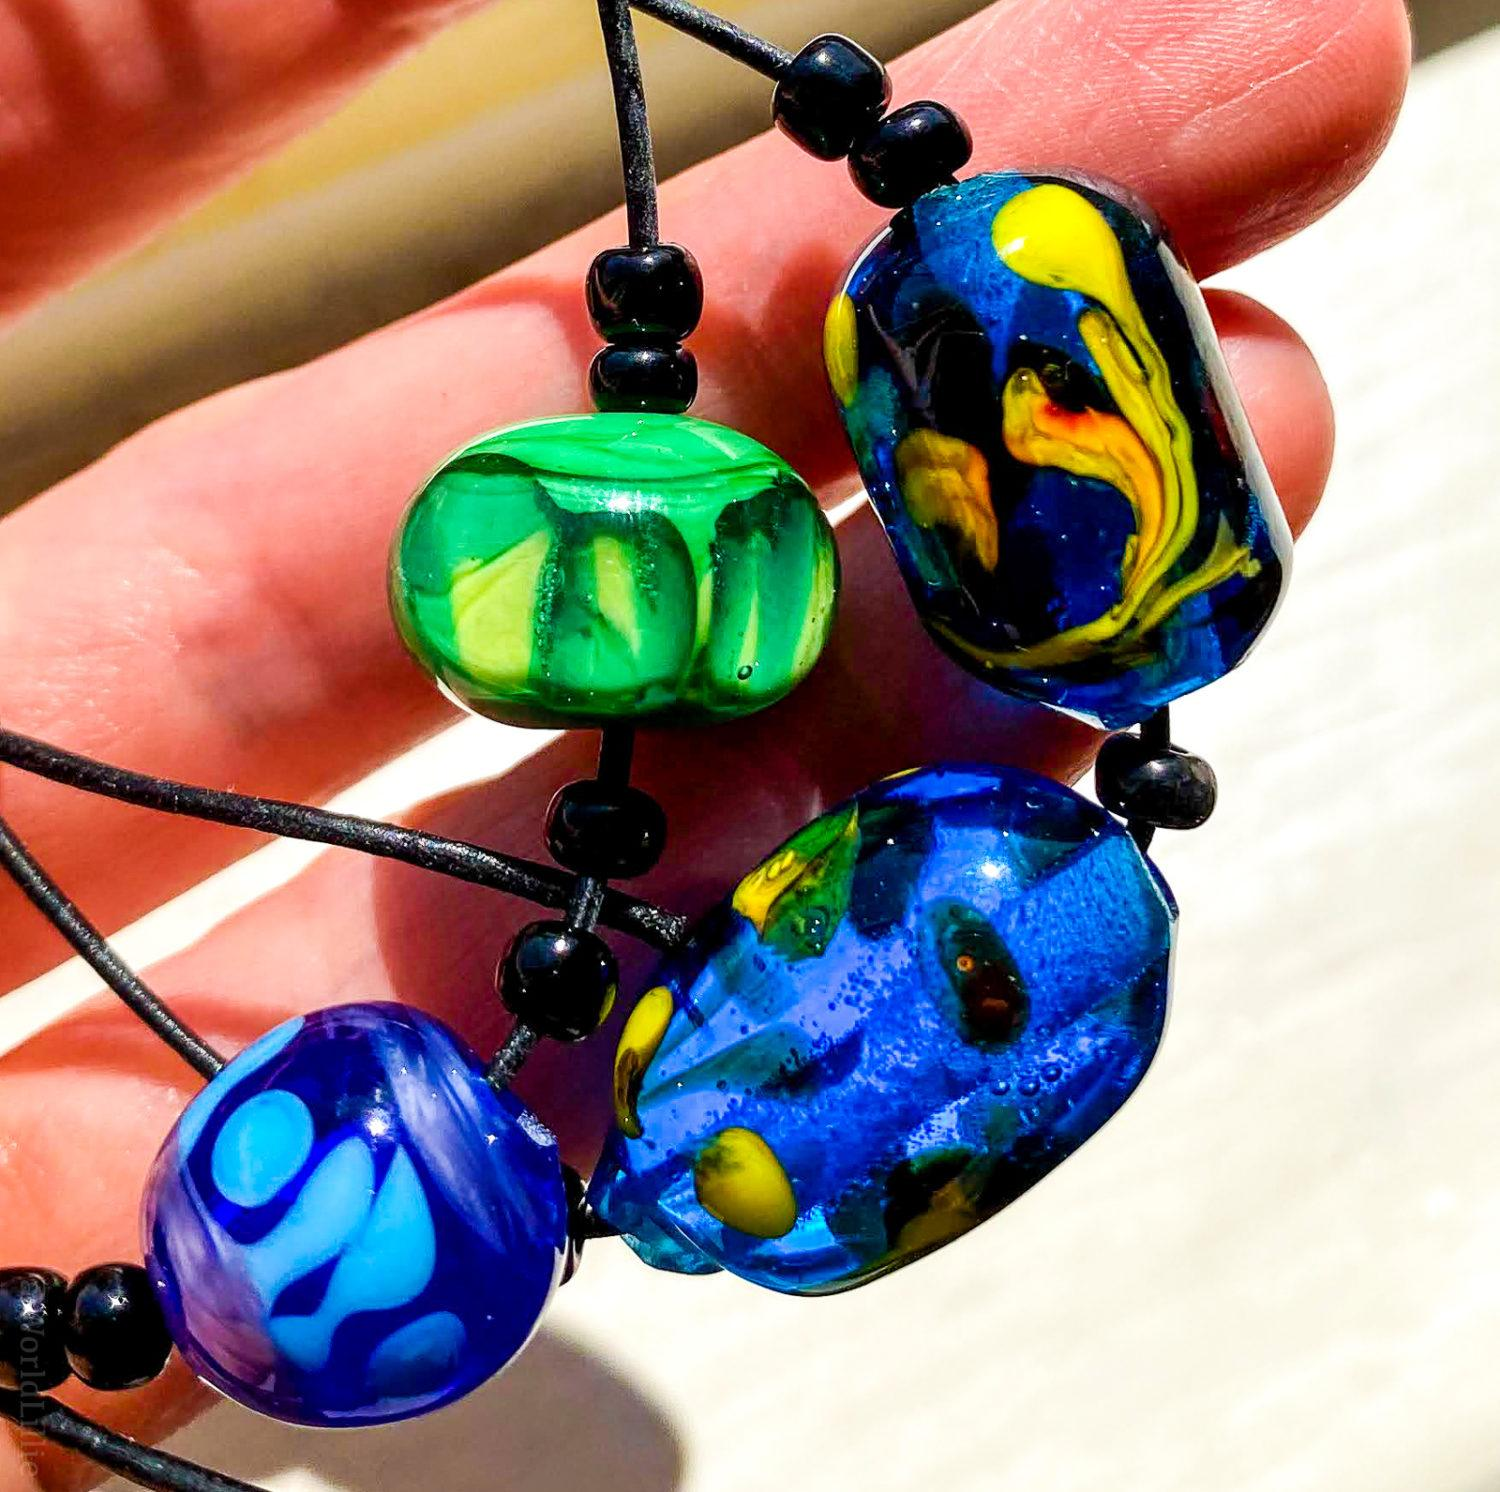 We MADE these glass beads?!